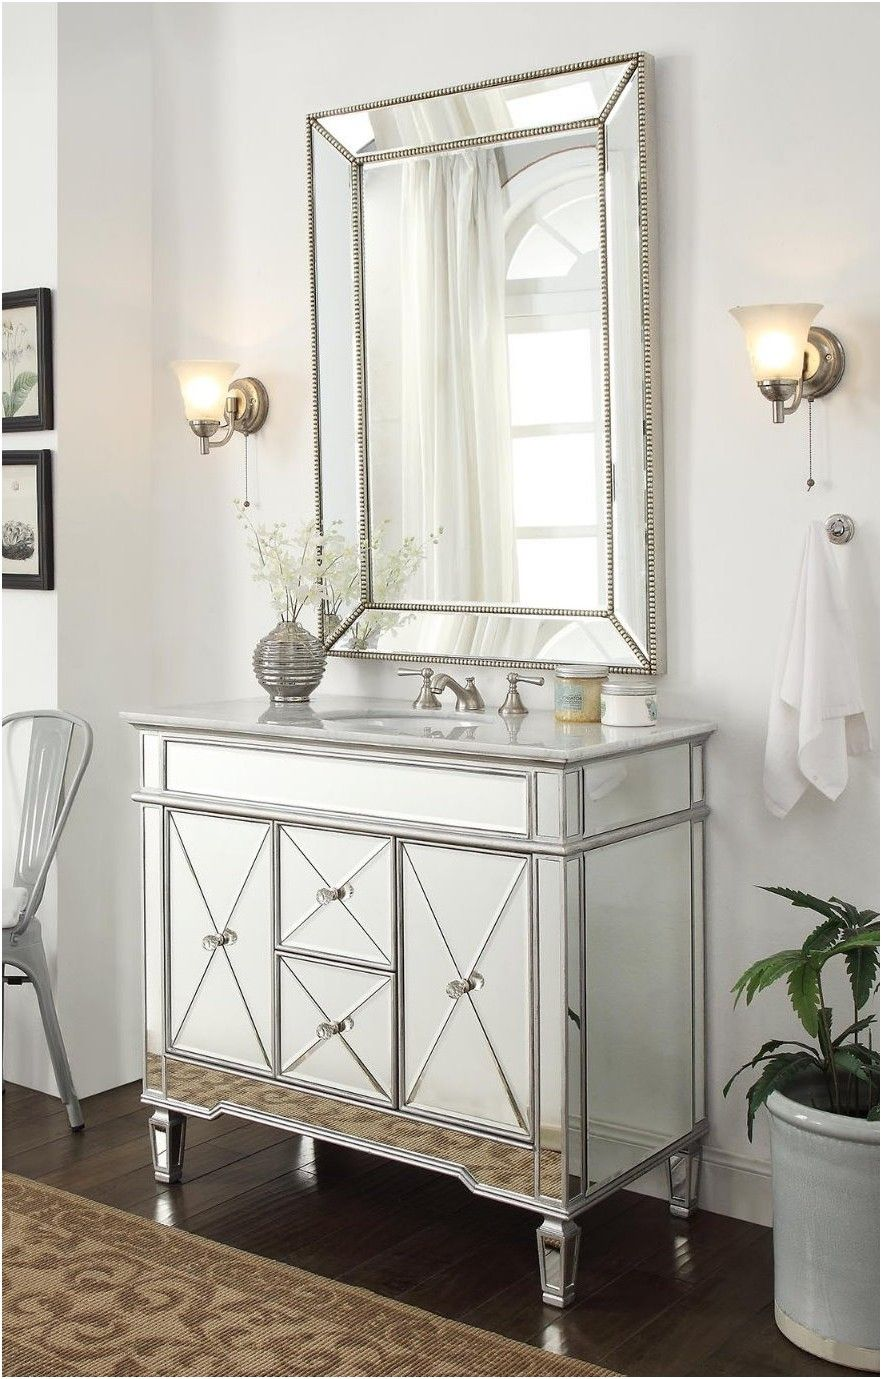 Mirrored Bathroom Vanity Cabinet 46 Cute Interior And Makeup from ...